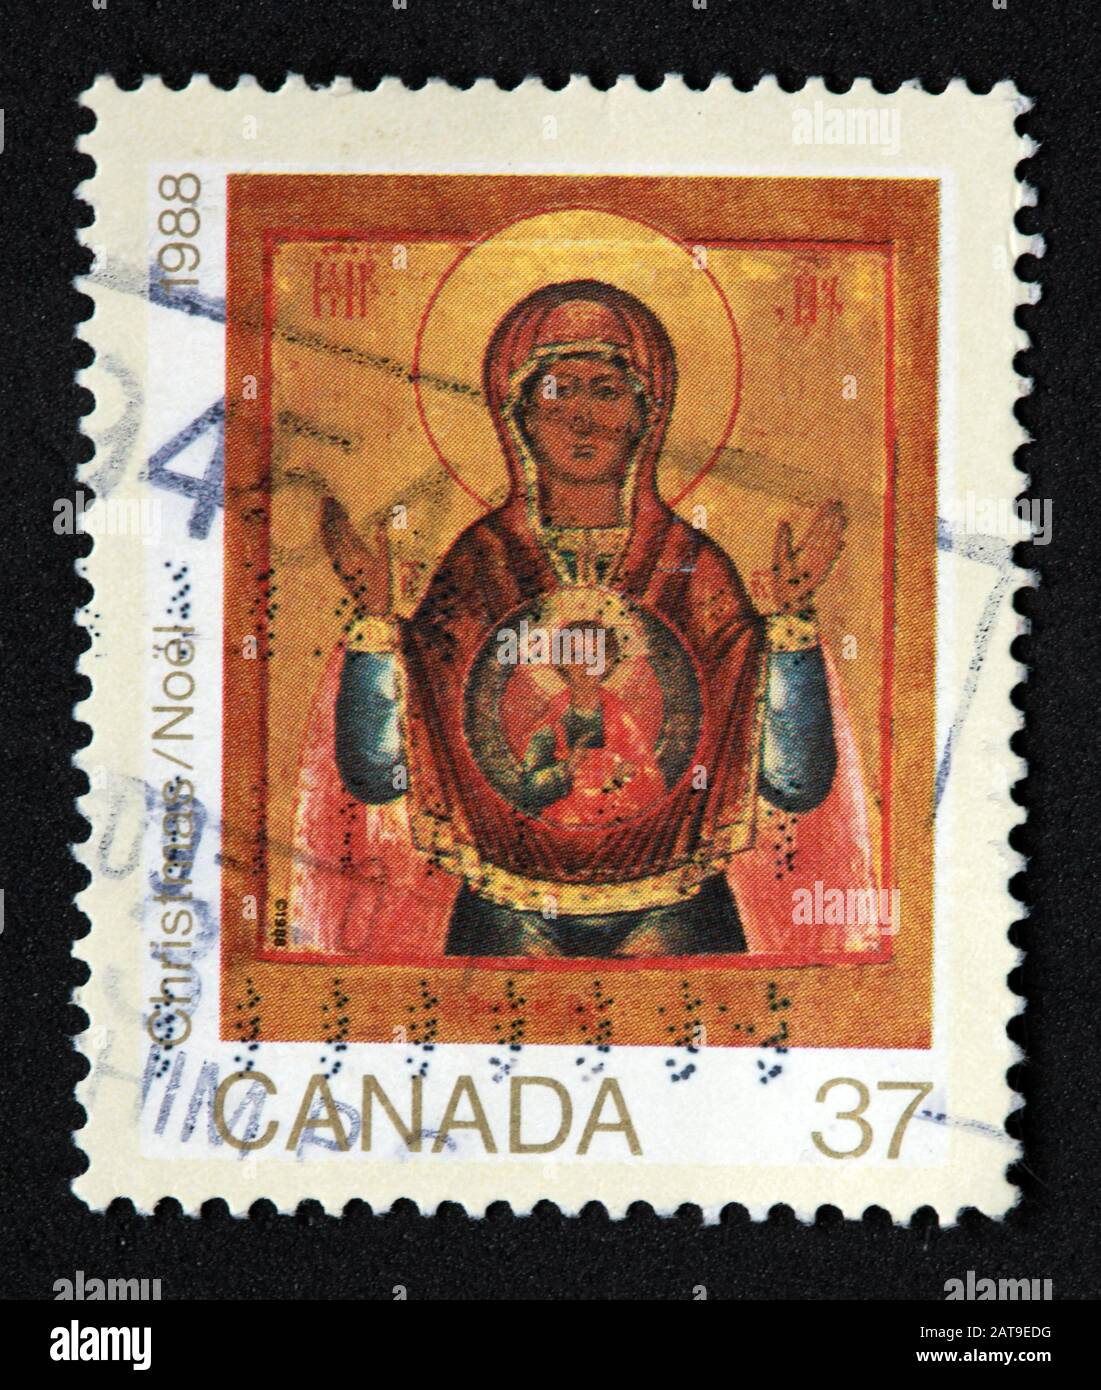 Hotpixuk,@Hotpixuk,GoTonySmith,stamp,postal,franked,frank,used stamps,used franked,used,franked stamp,from envelope,history,historic,old,poste,post office,communications,postage,sending letters,sending,parcels,Christ on a stamp,Jesus stamp,Christ child,Canada 37c,37c,Xmas,1988,angel,Christ,holy,sacred,Christian,Anglican,Noel,Noel stamp,used stamp,Canadian